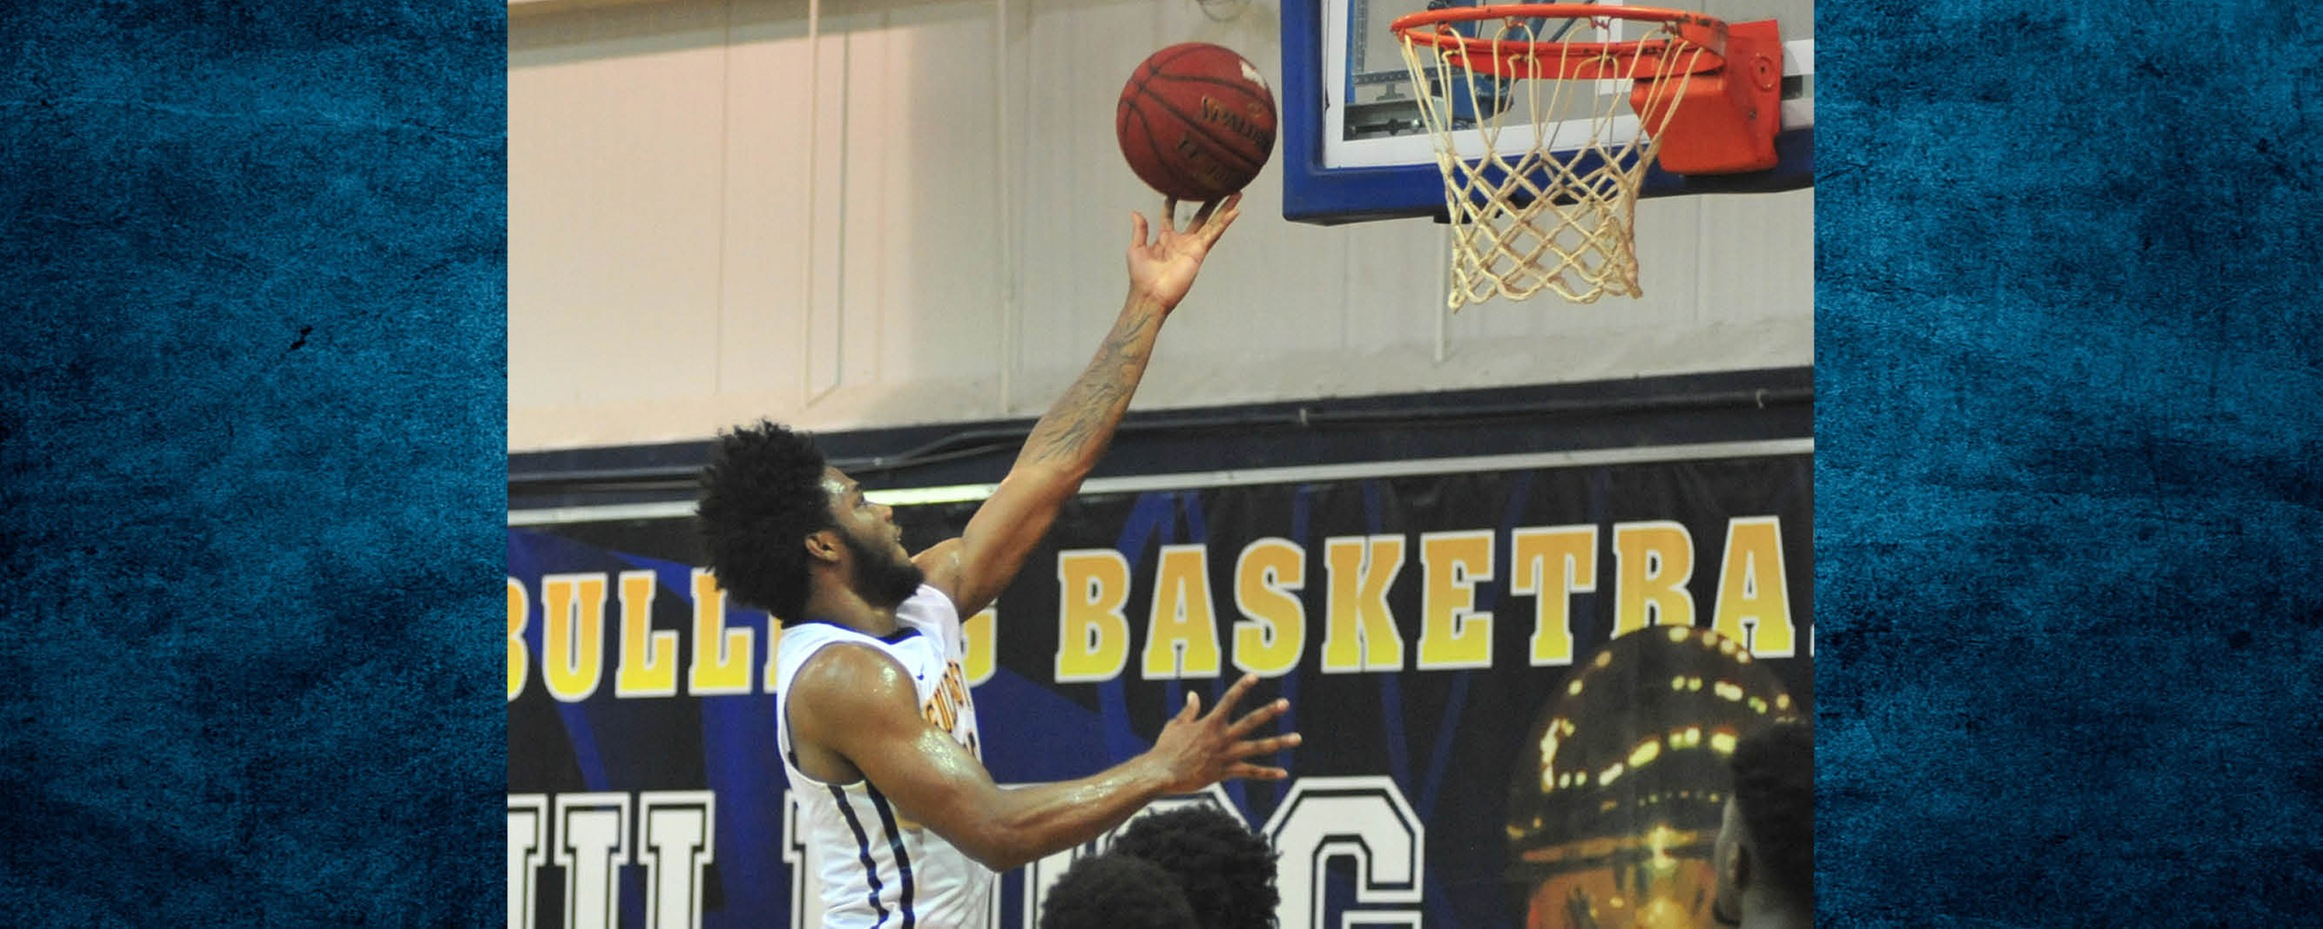 Gulf Coast tries to bounce back from 1st South loss